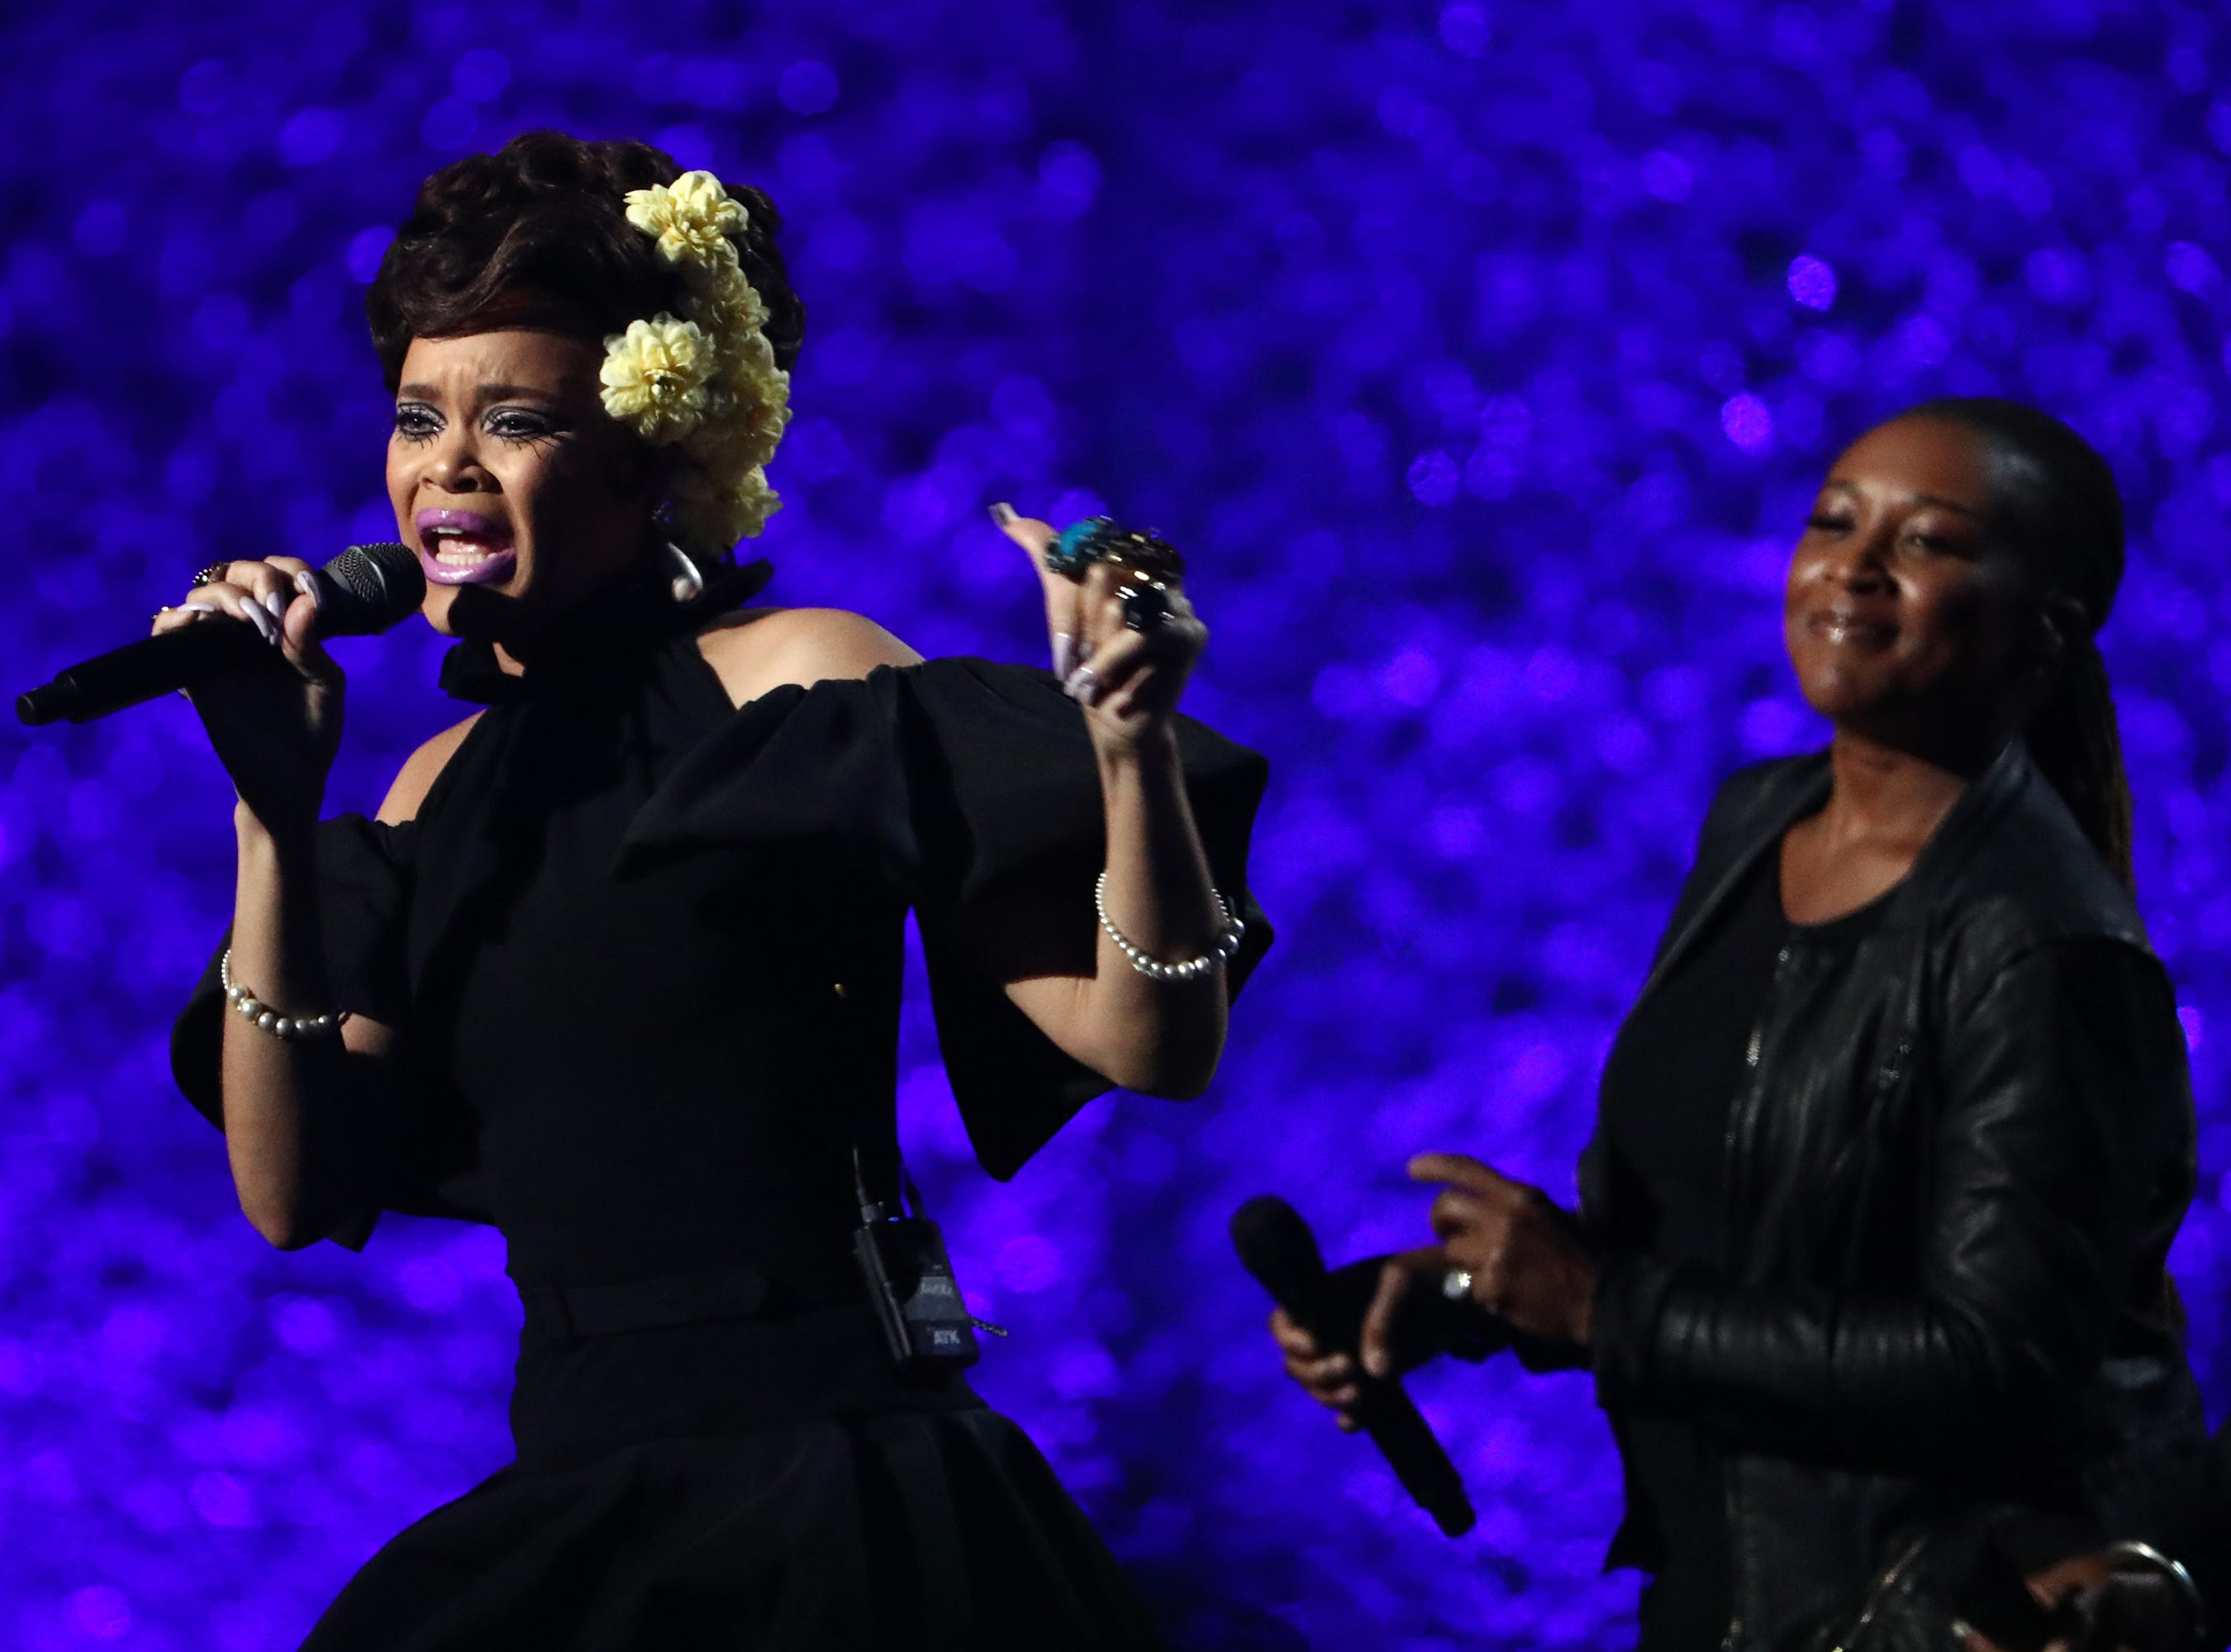 """LOS ANGELES, CA - JANUARY 13:  Andra Day performs at """"Aretha! A Grammy Celebration For the Queen Of Soul"""" at the Shrine Auditorium on Jan. 13, 2019, in Los Angeles, Calif."""